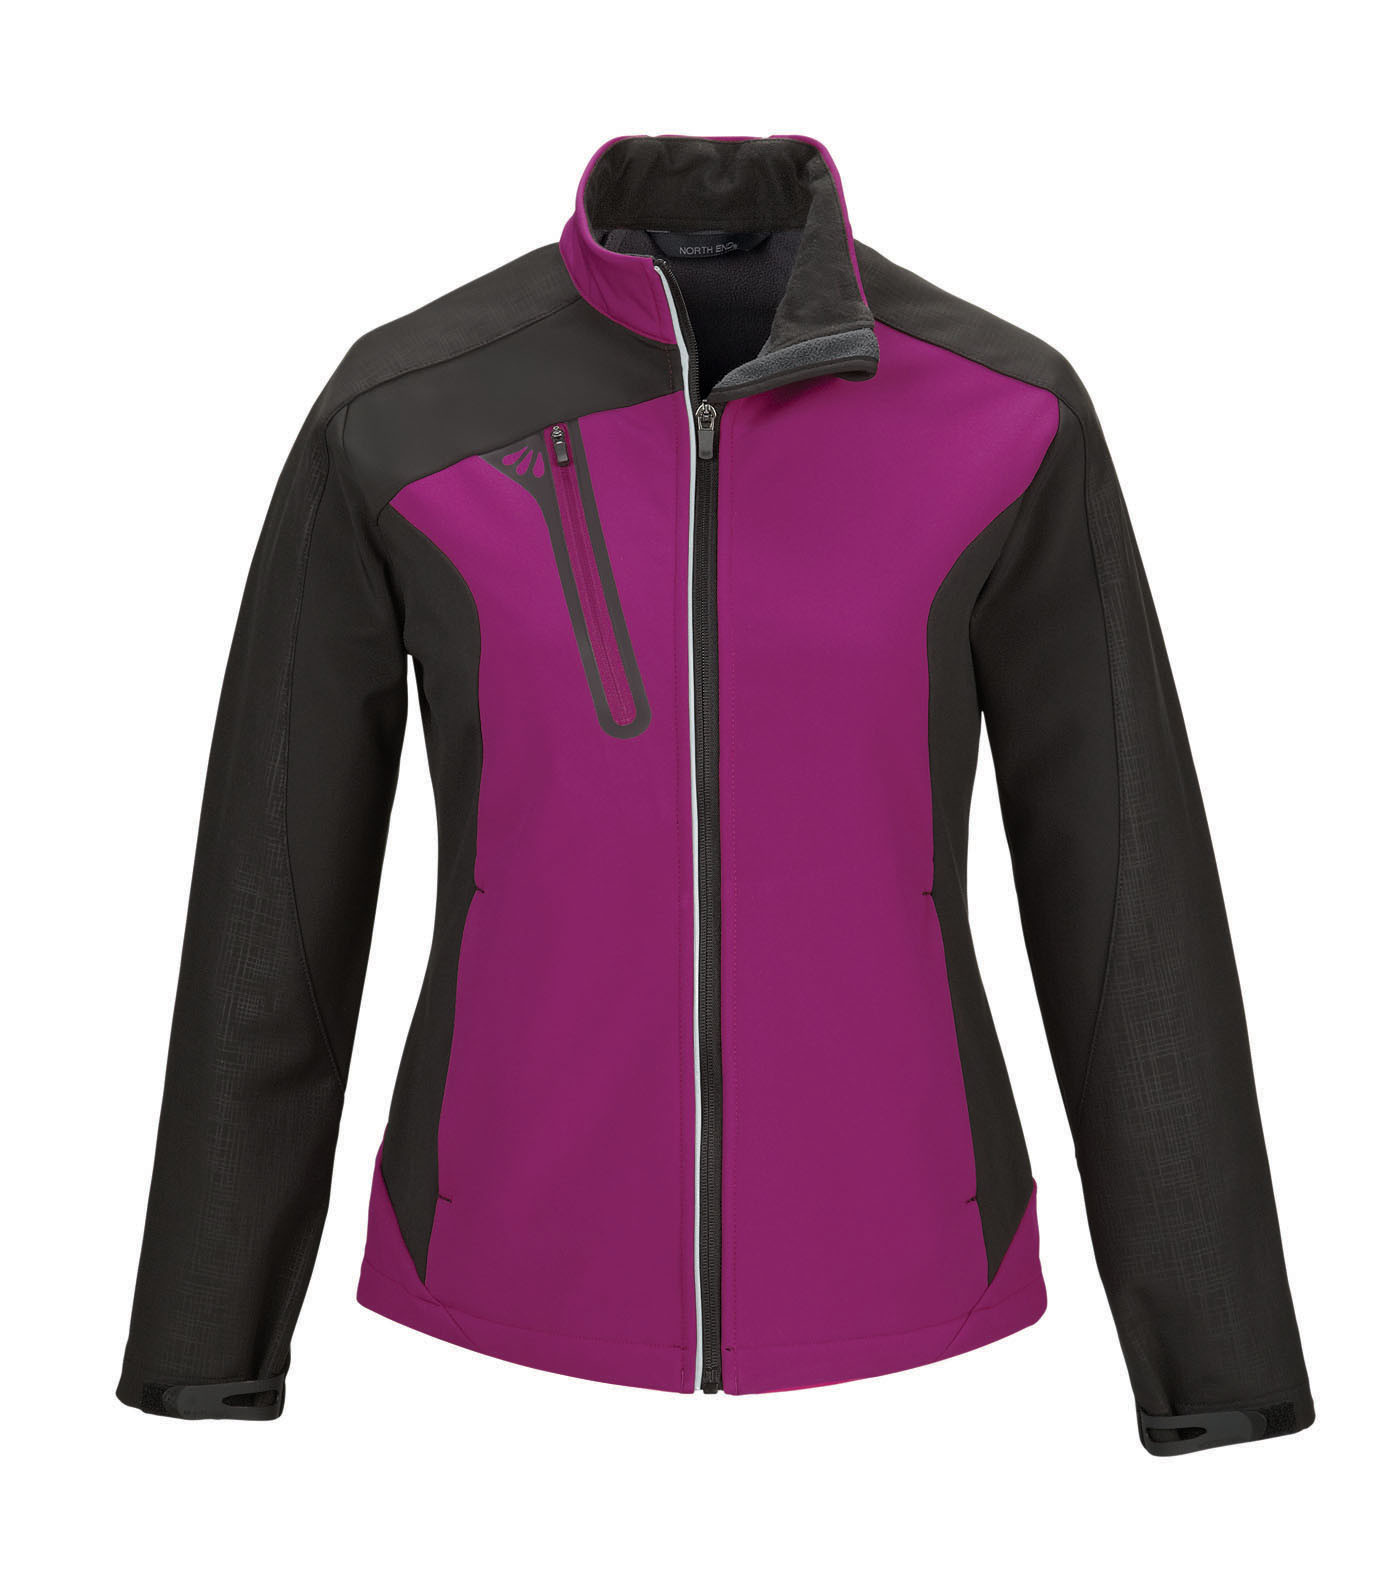 Ash City UTK 1 Warm.Logik 78176 - Terrain Ladies' Color-...